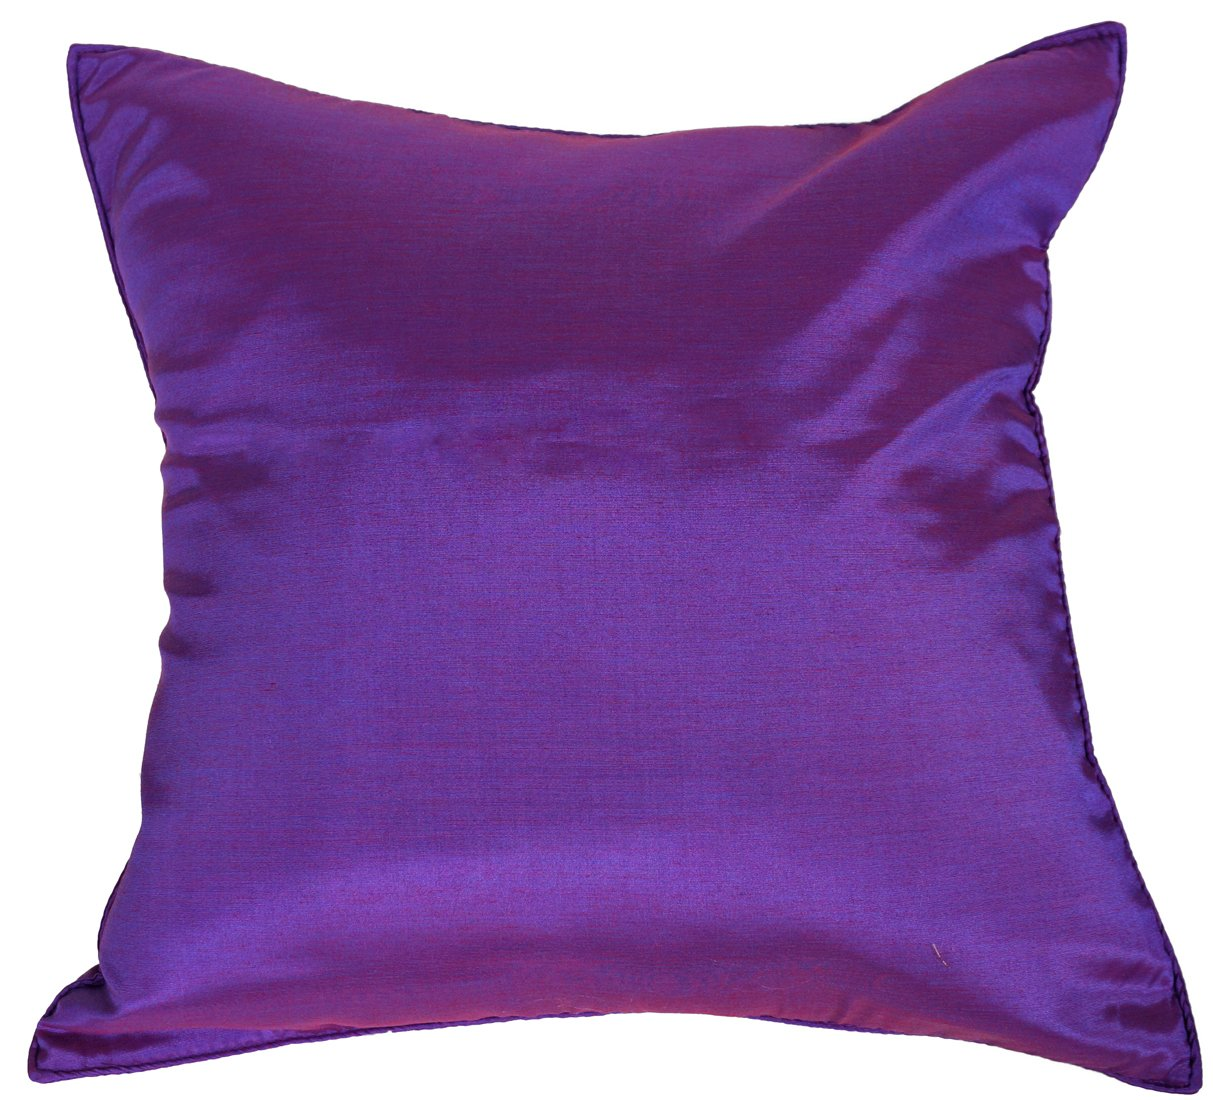 Purple Silk Throw Pillows : Purple Silk Throw Decorative Pillow Cases for Sofa Couch 16x16